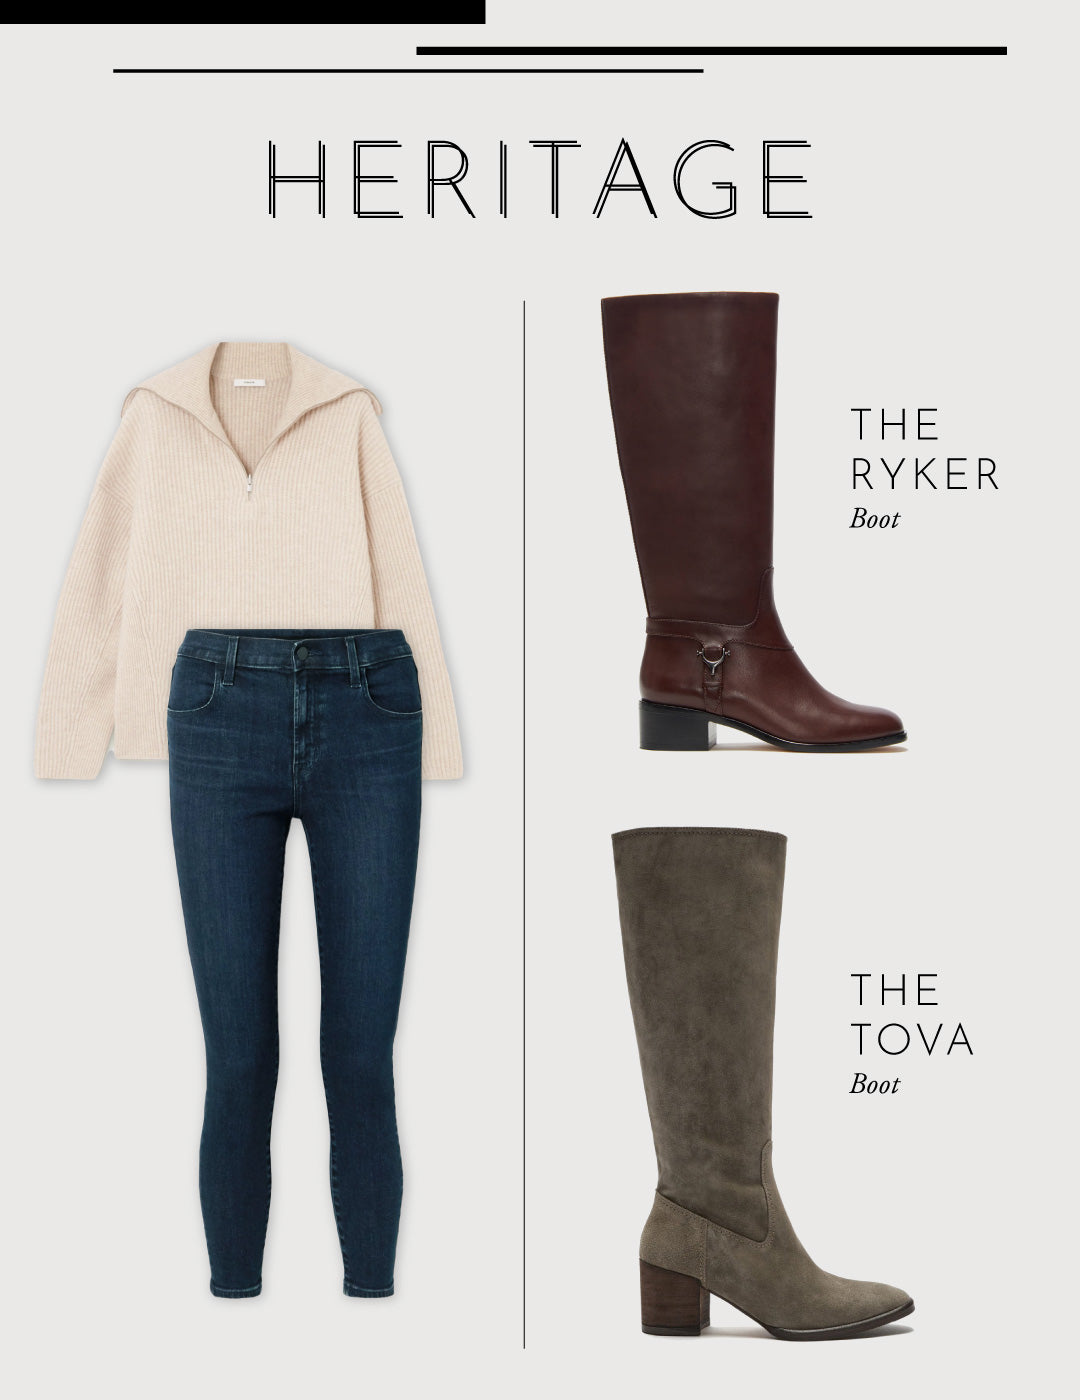 fall boots style guide- etienne aigner - heritage